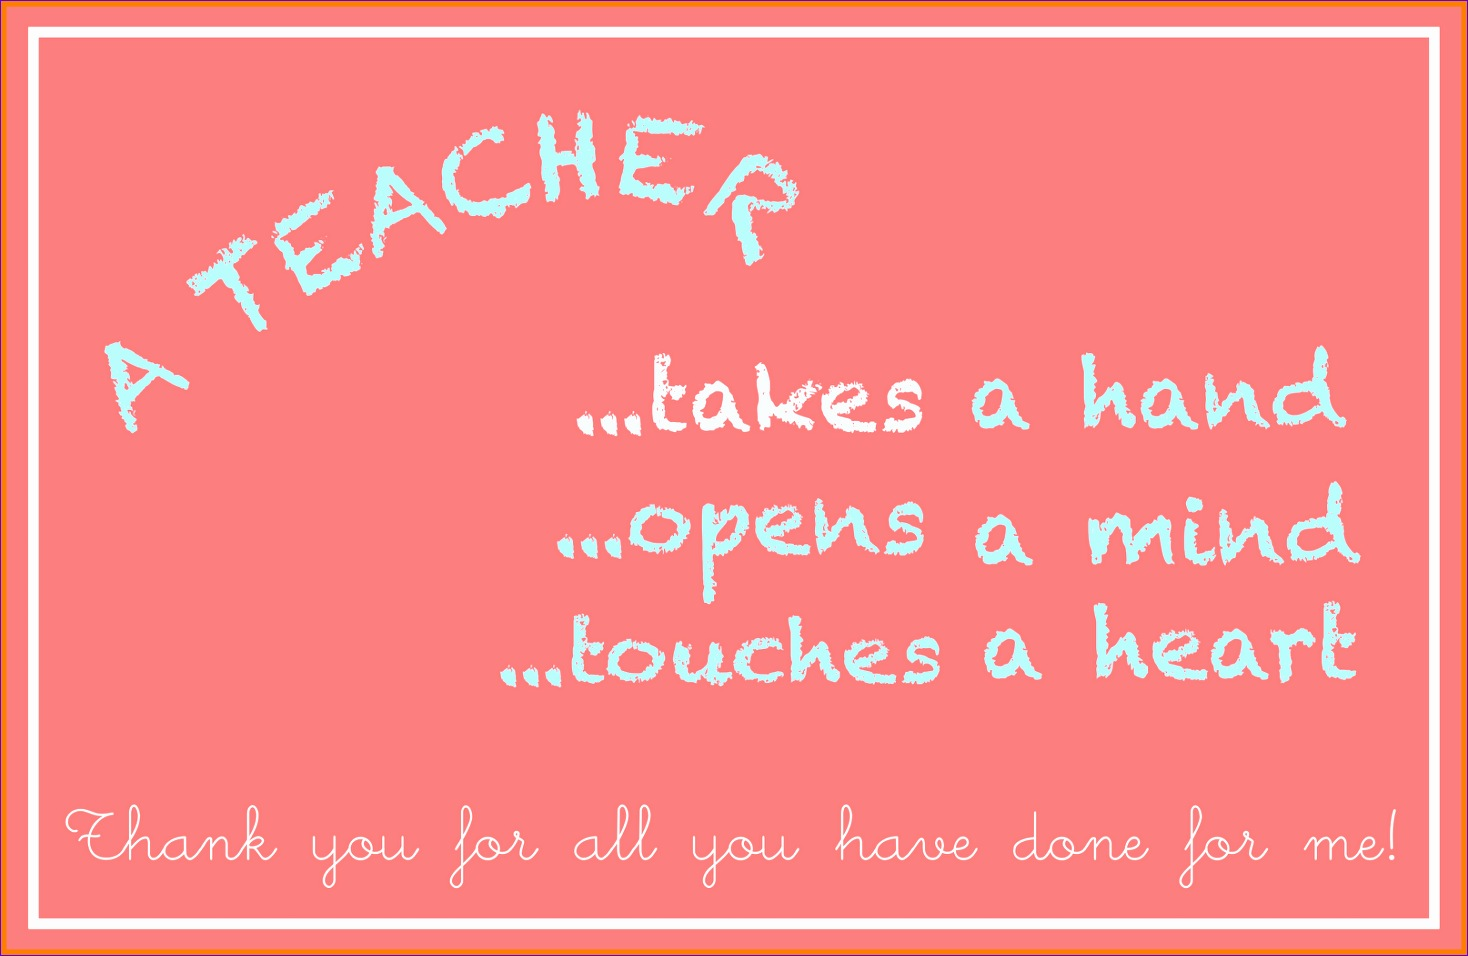 10 thank you notes to teachers 1468956